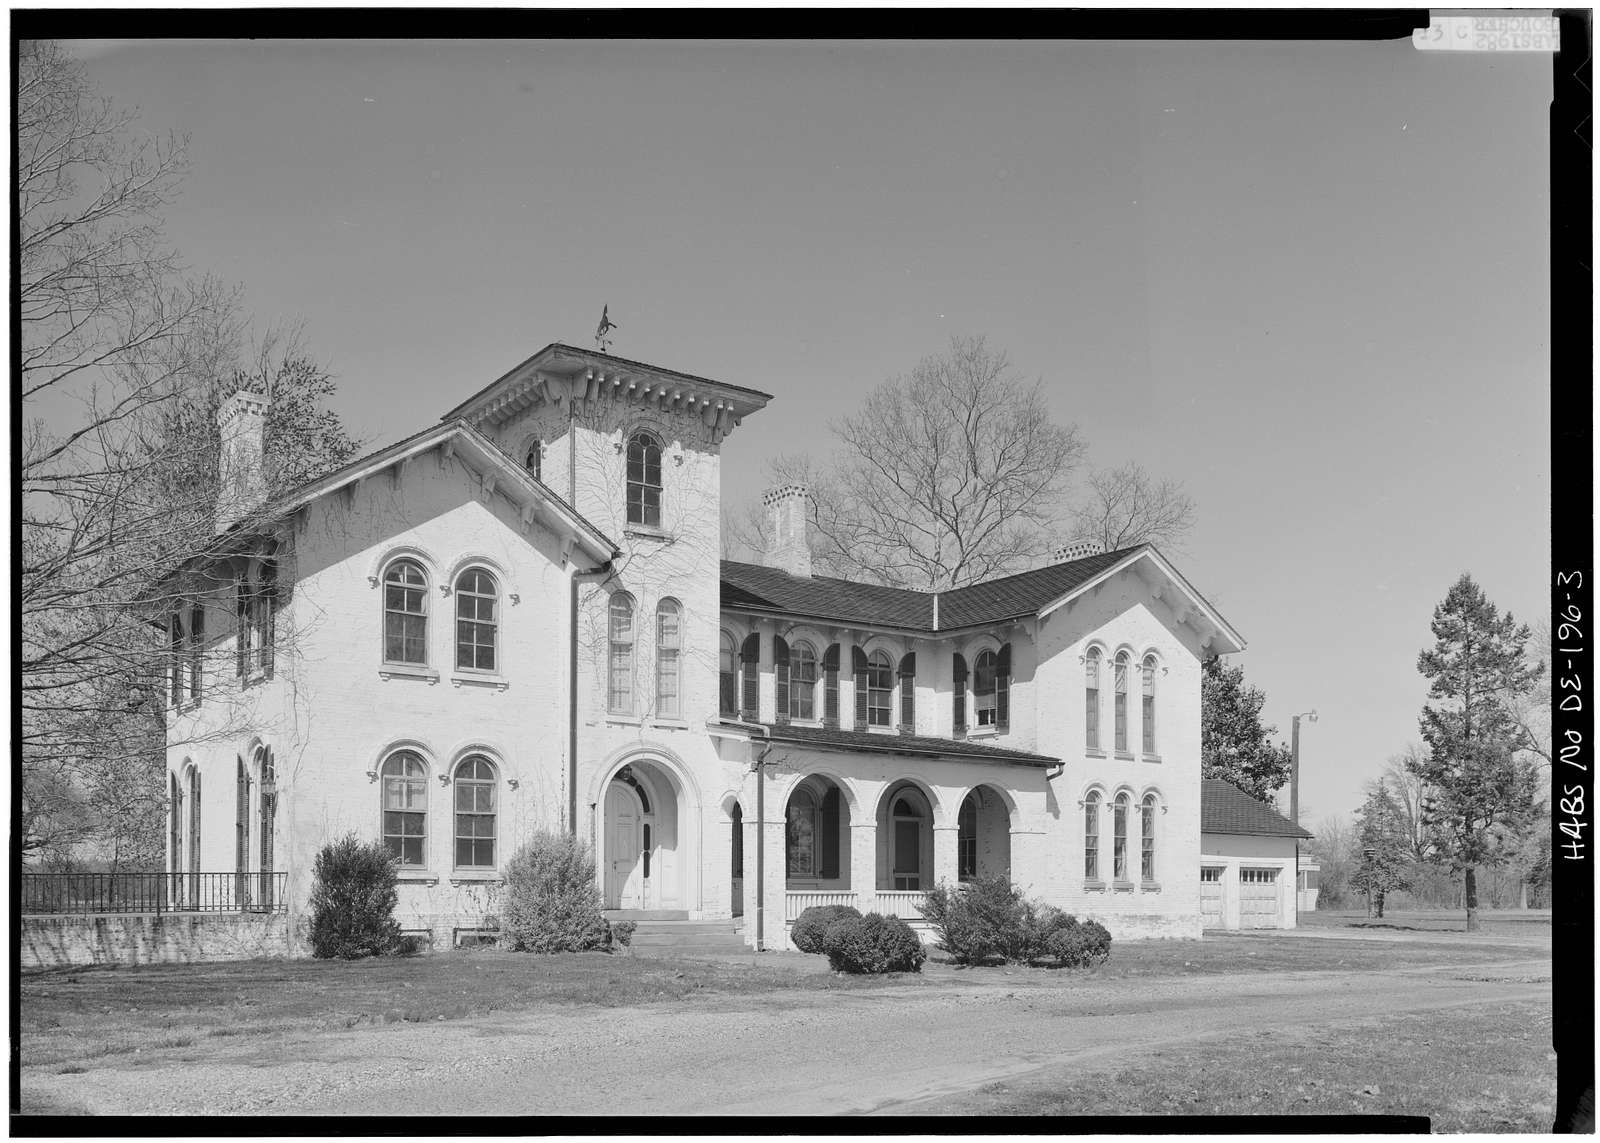 Governor William H. Ross House, State Route 543, Seaford, Sussex County, DE